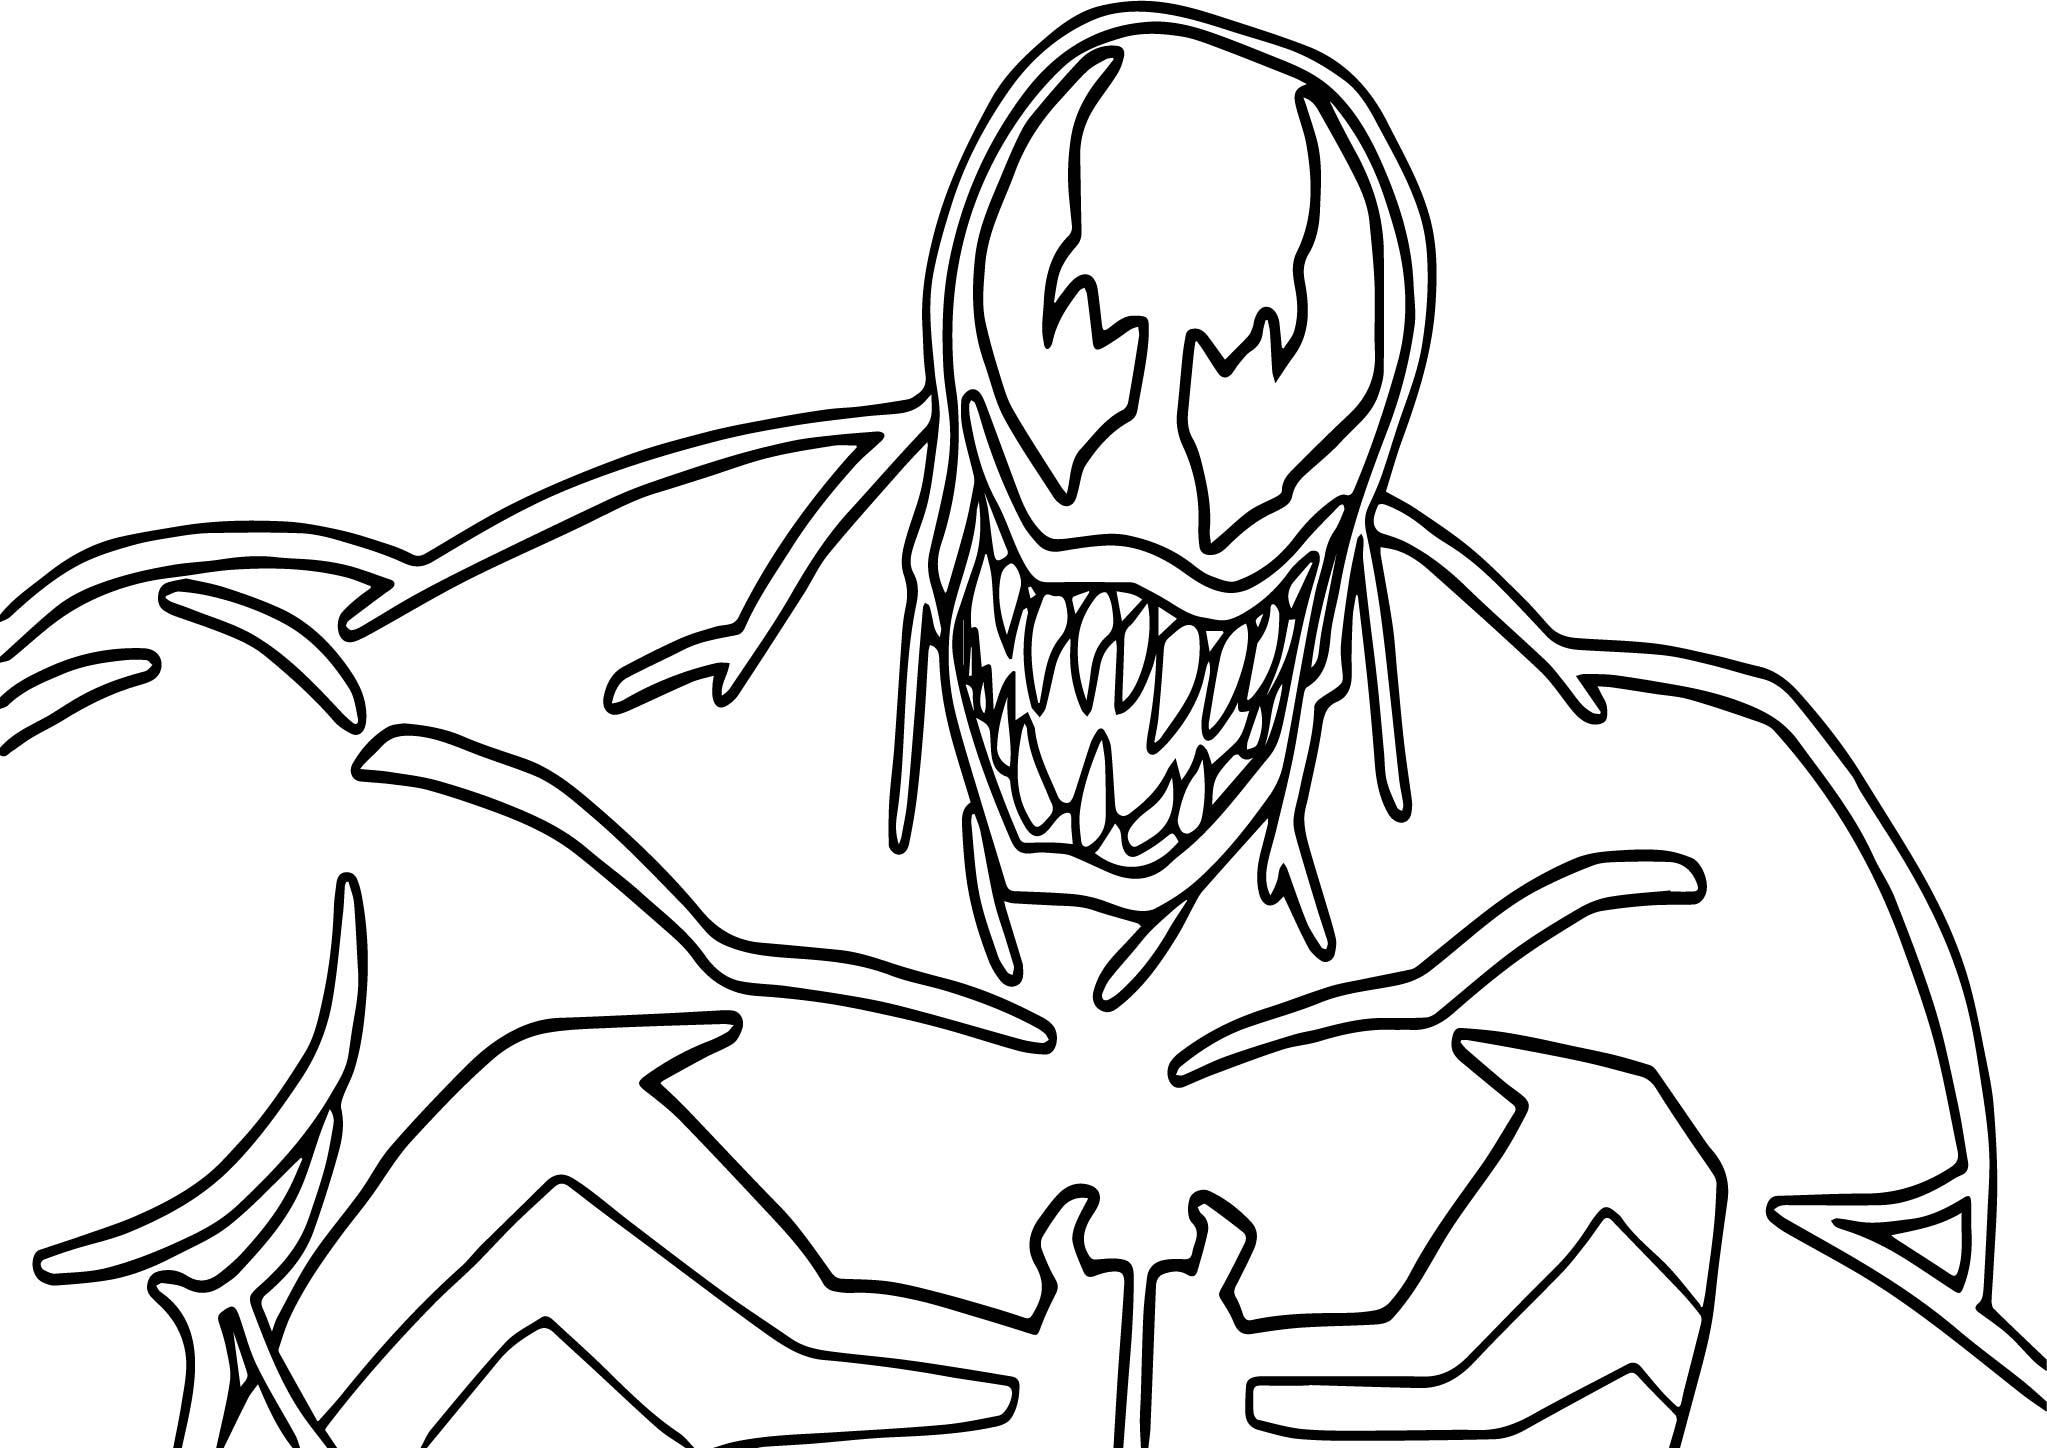 venom face coloring pages venom face drawing at getdrawings free download pages coloring venom face